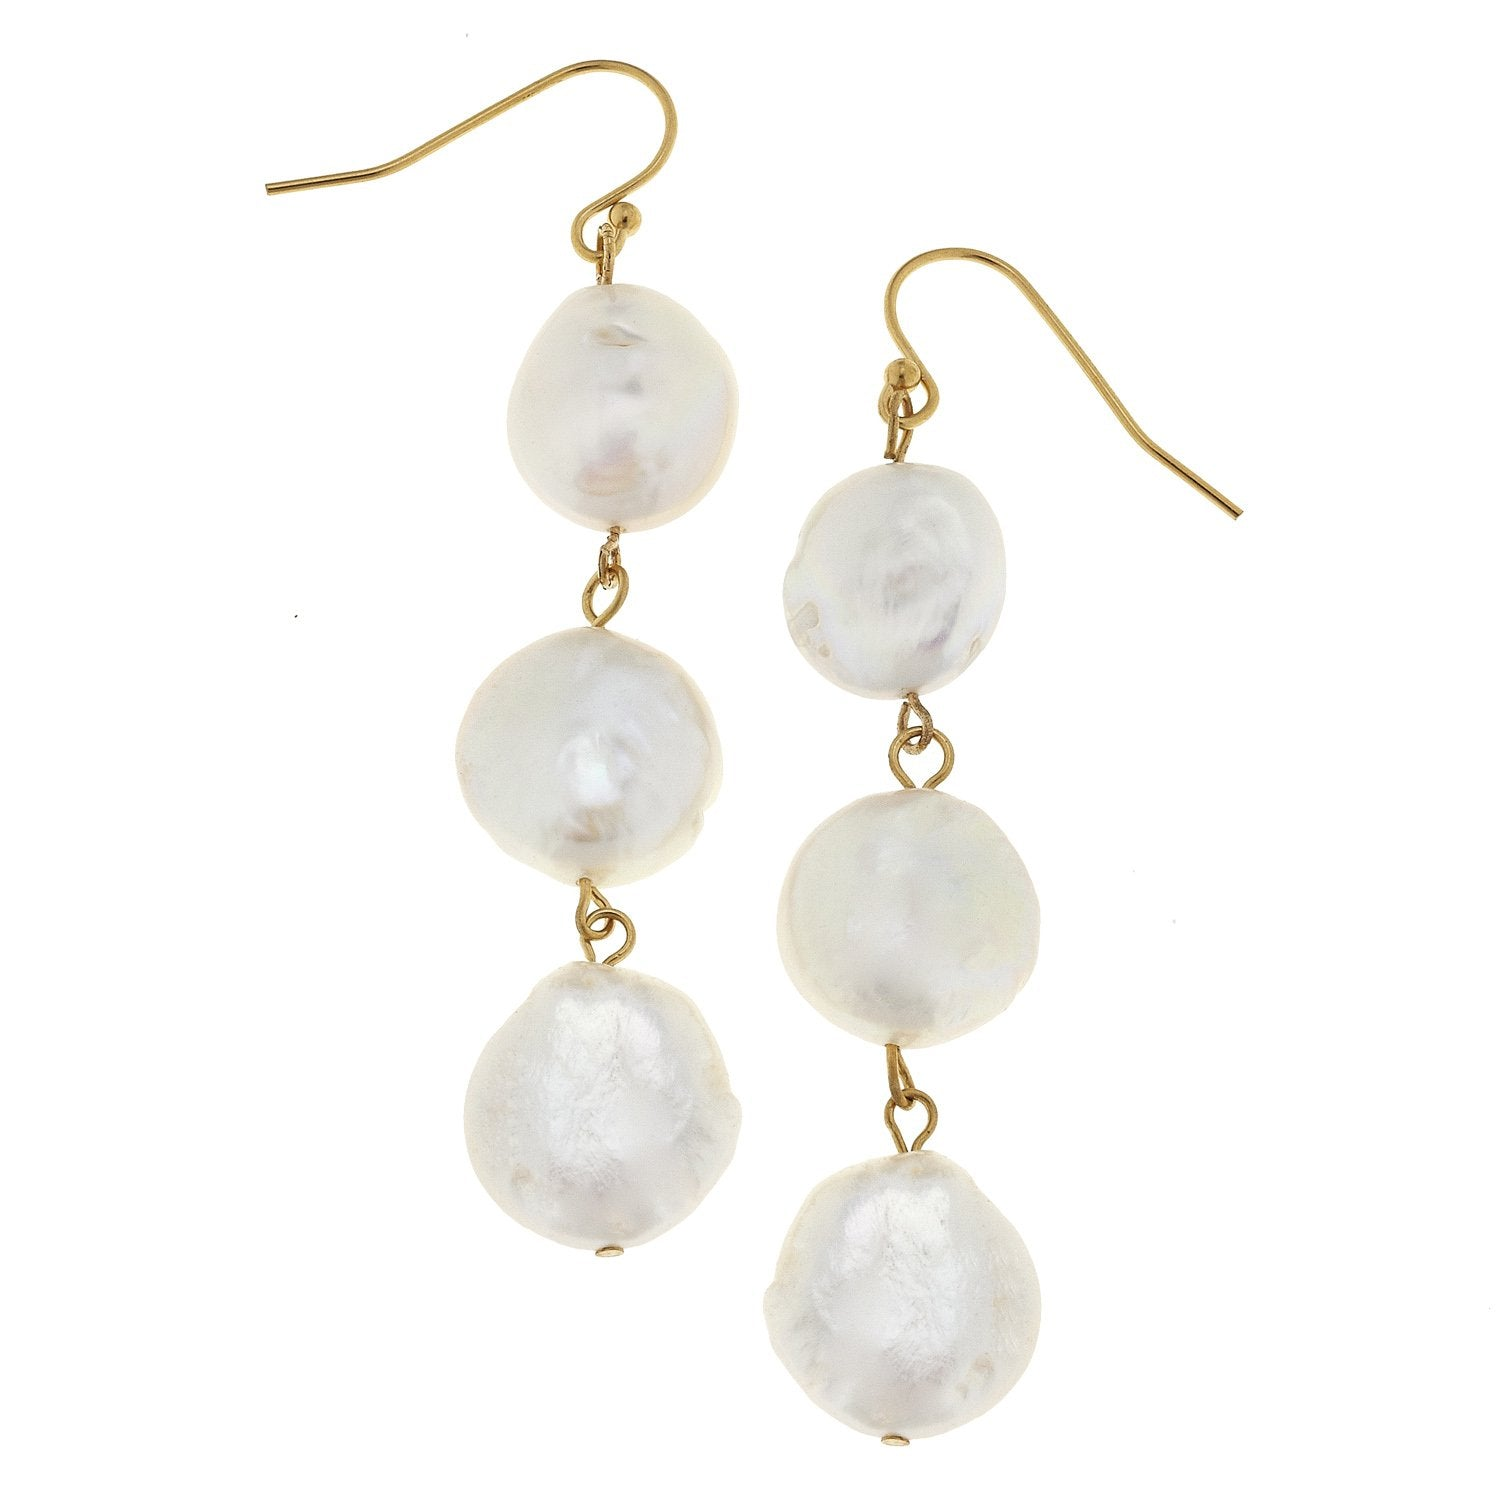 Triple Coin Pearl Earrings